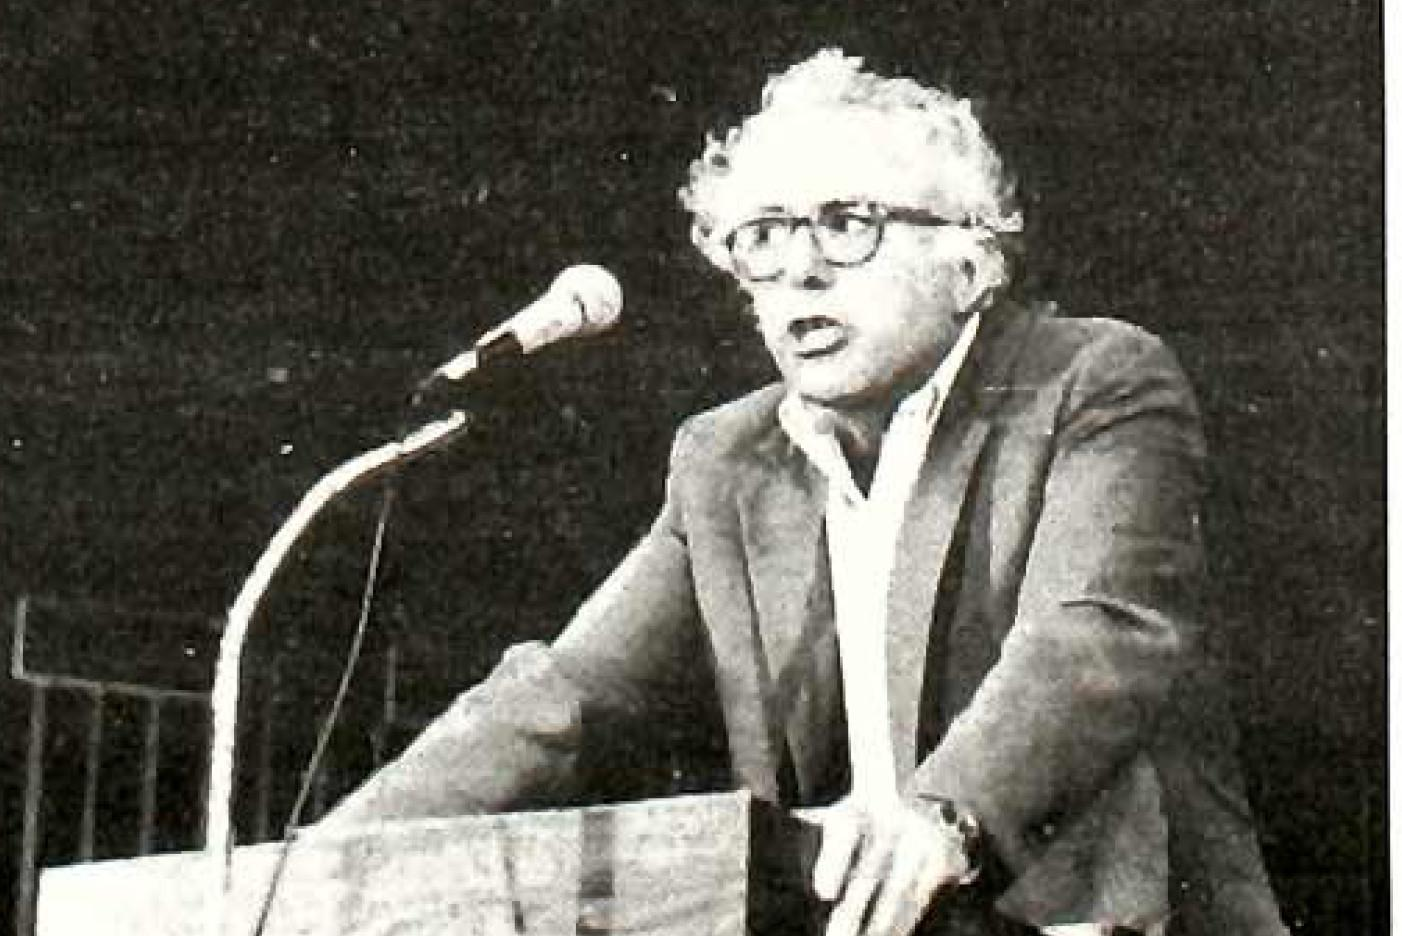 Senator Bernie Sanders addresses Macalester in 1987 in Weyerhaeuser Chapel. Photo by Heidi Freund, reprinted from the April 3, 1987 issue of The Mac Weekly.